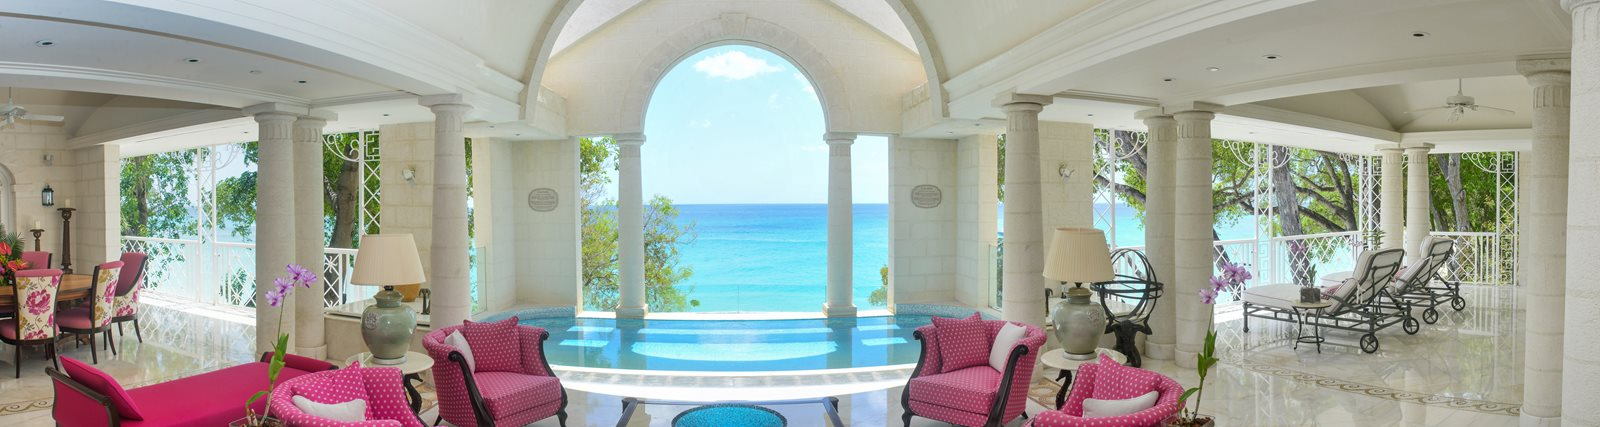 Sandy Lane Resort Luxury Caribbean Infinity Pool